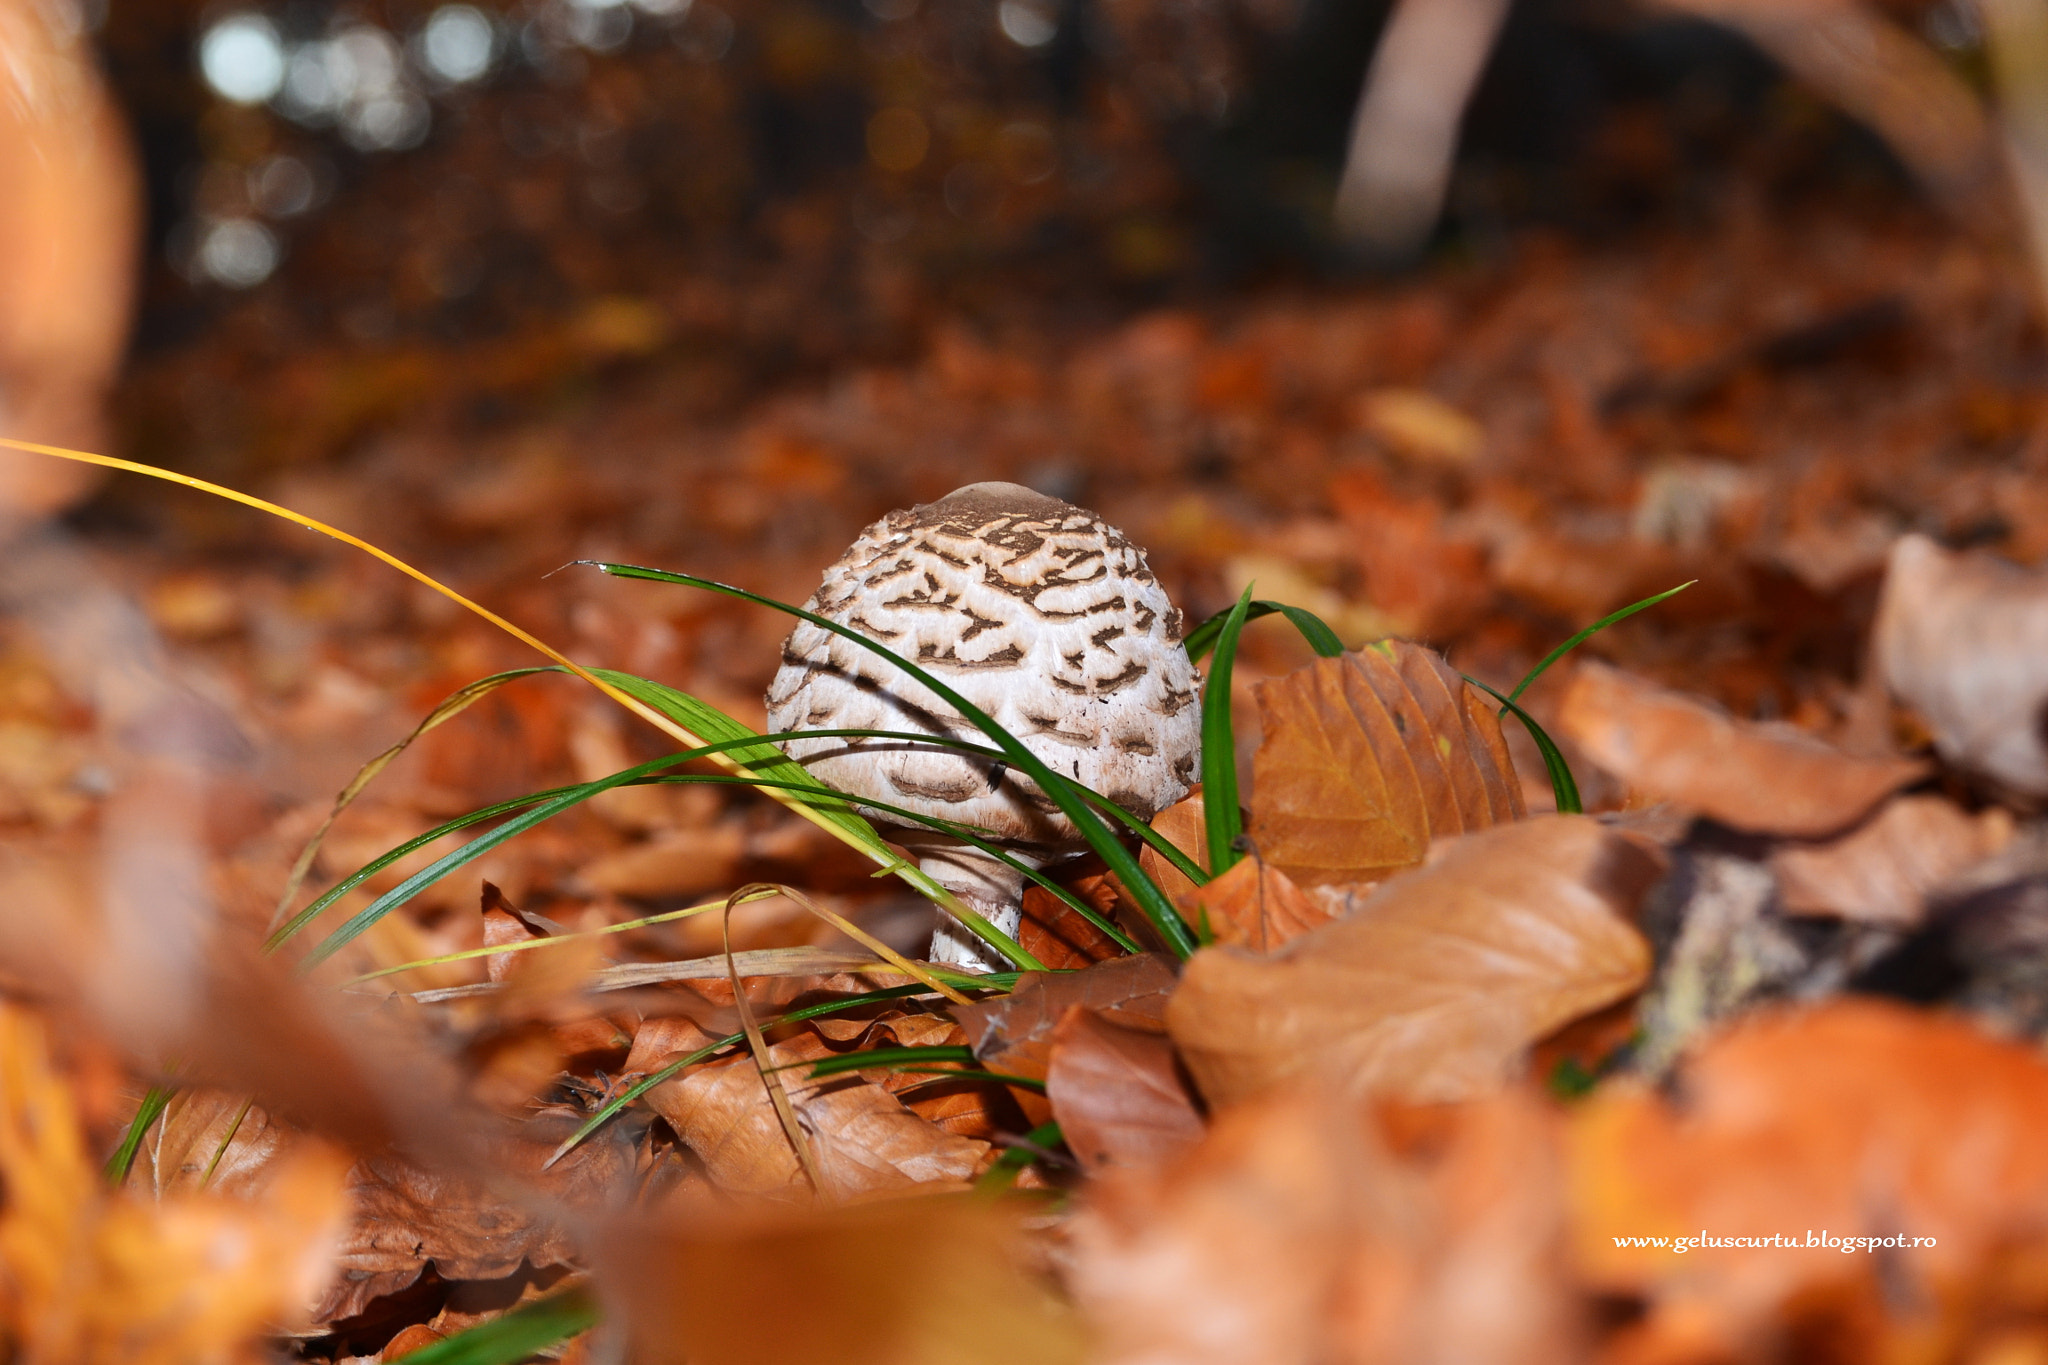 Photograph Autumn mushrooms in the forest by Scurtu Gelu on 500px